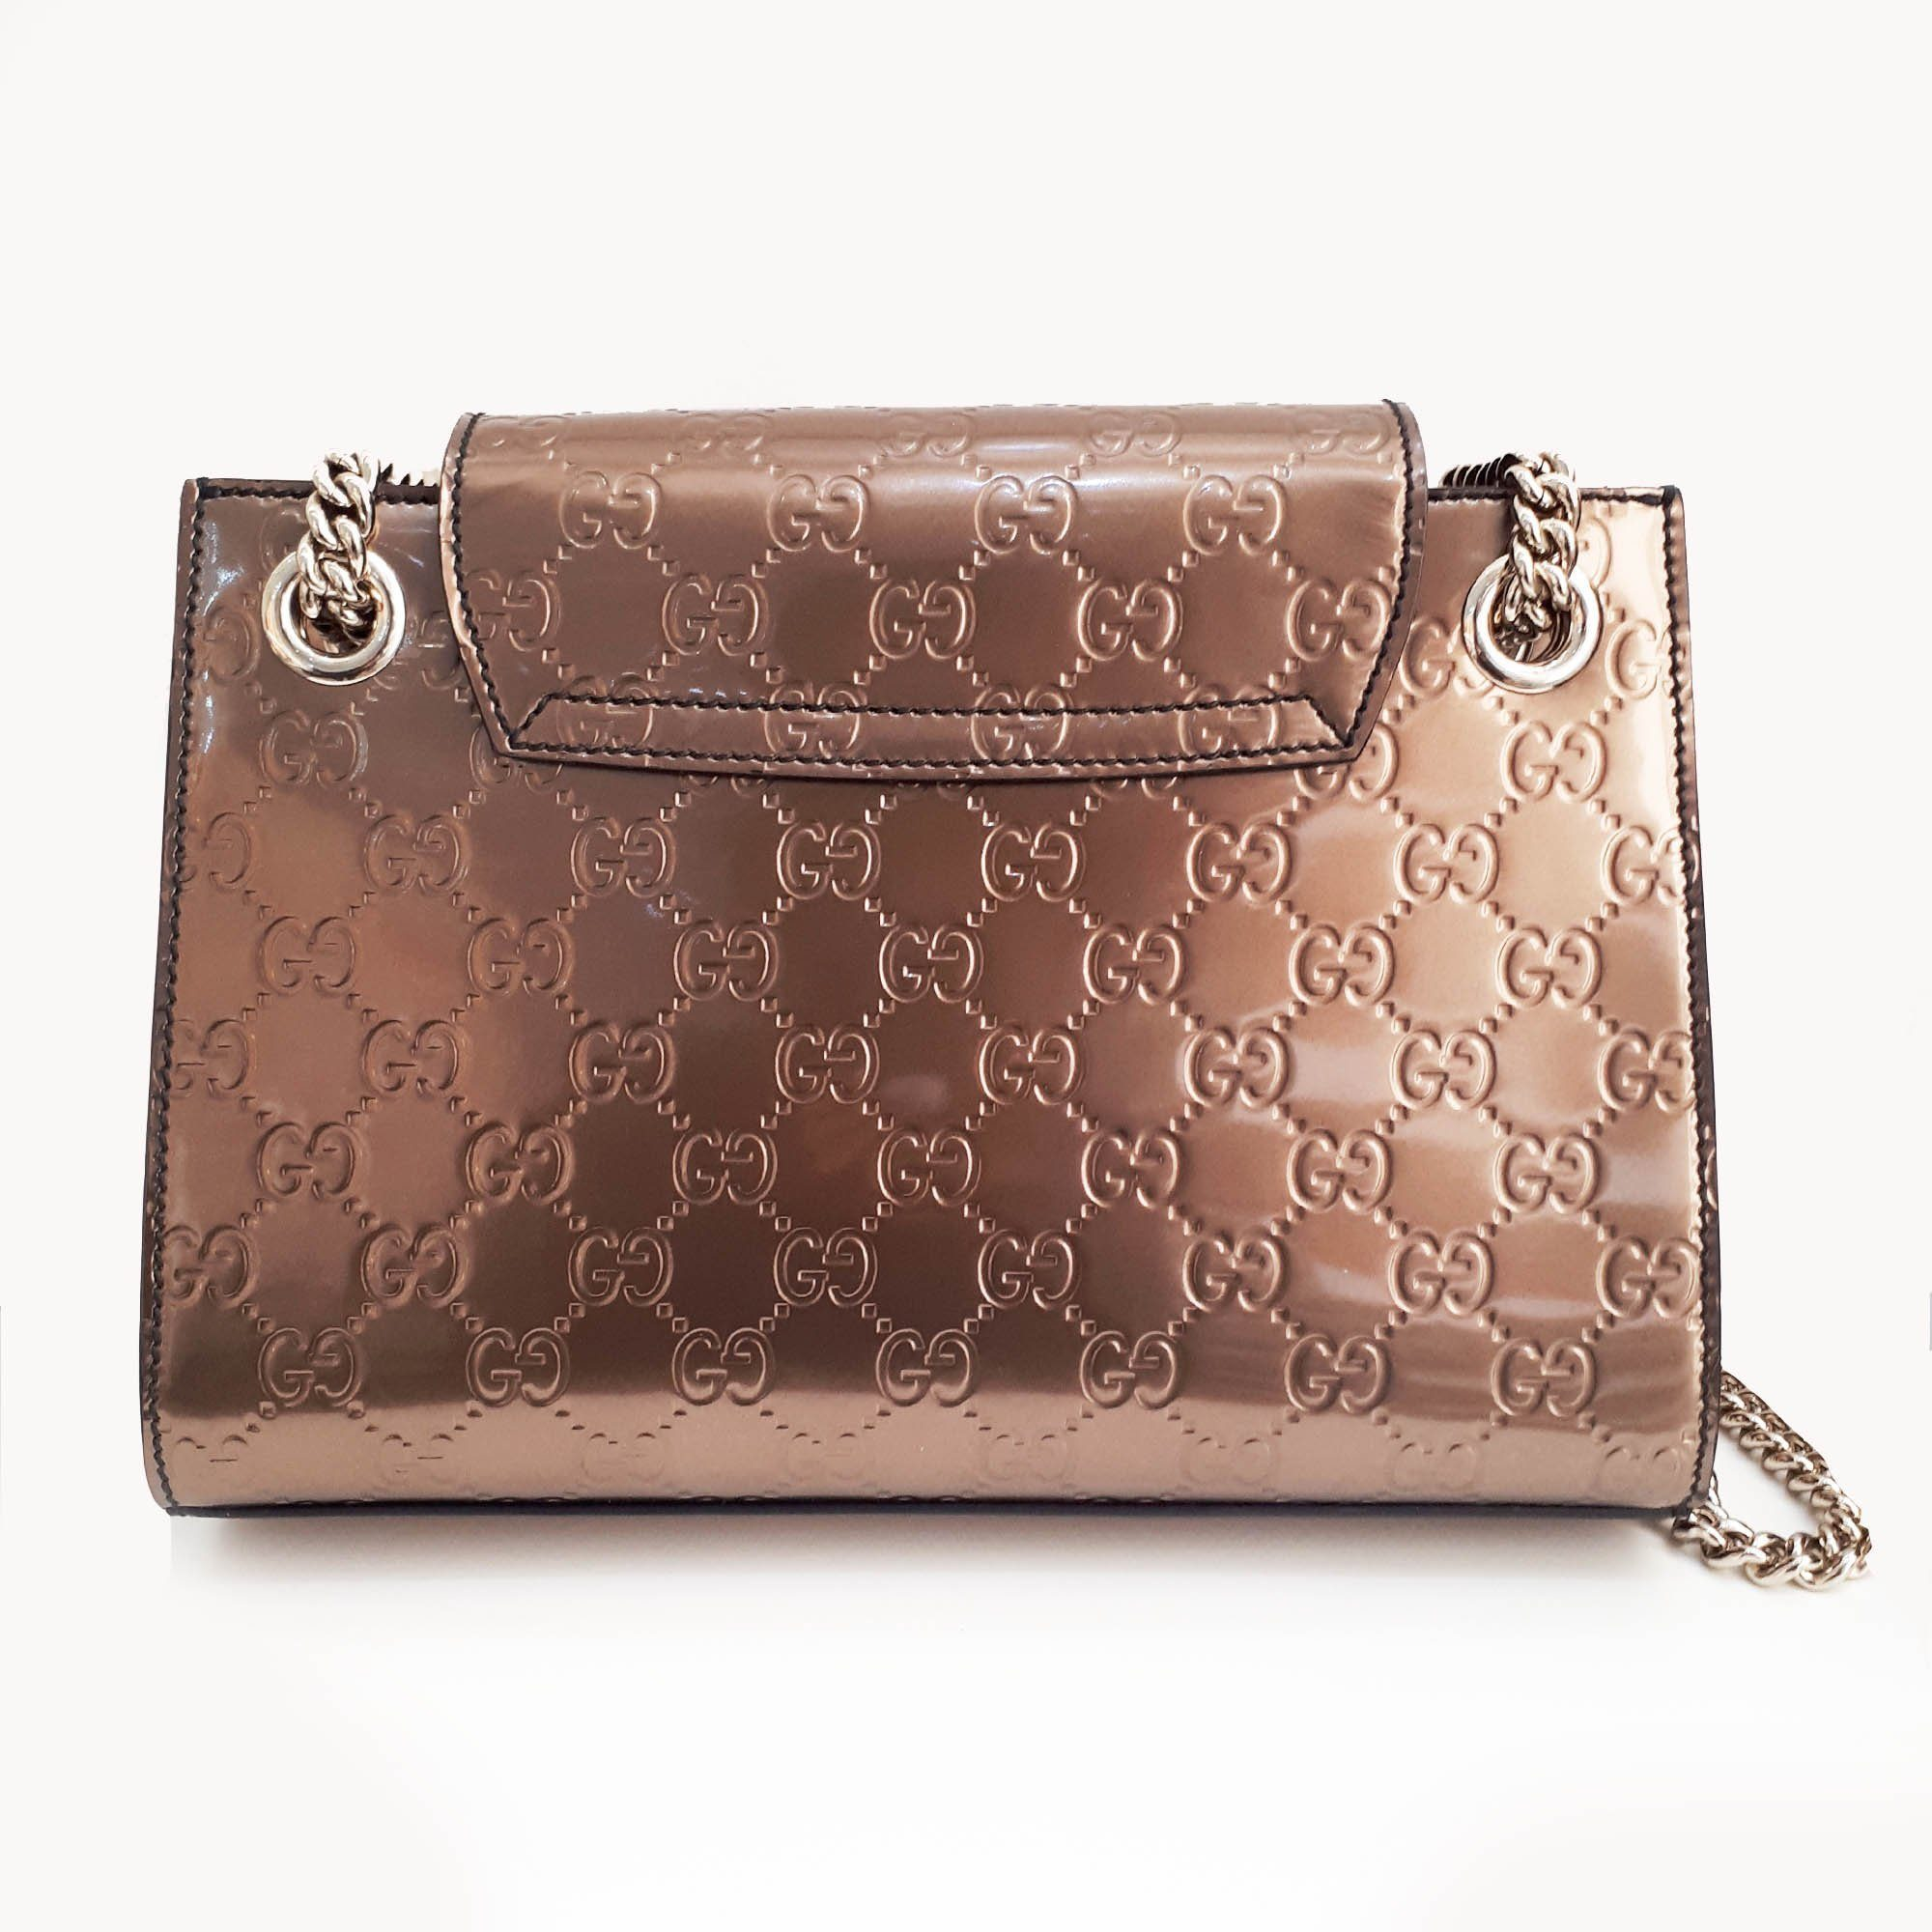 Gucci Emily Small Guccissima Leather Chain Shoulder Bag